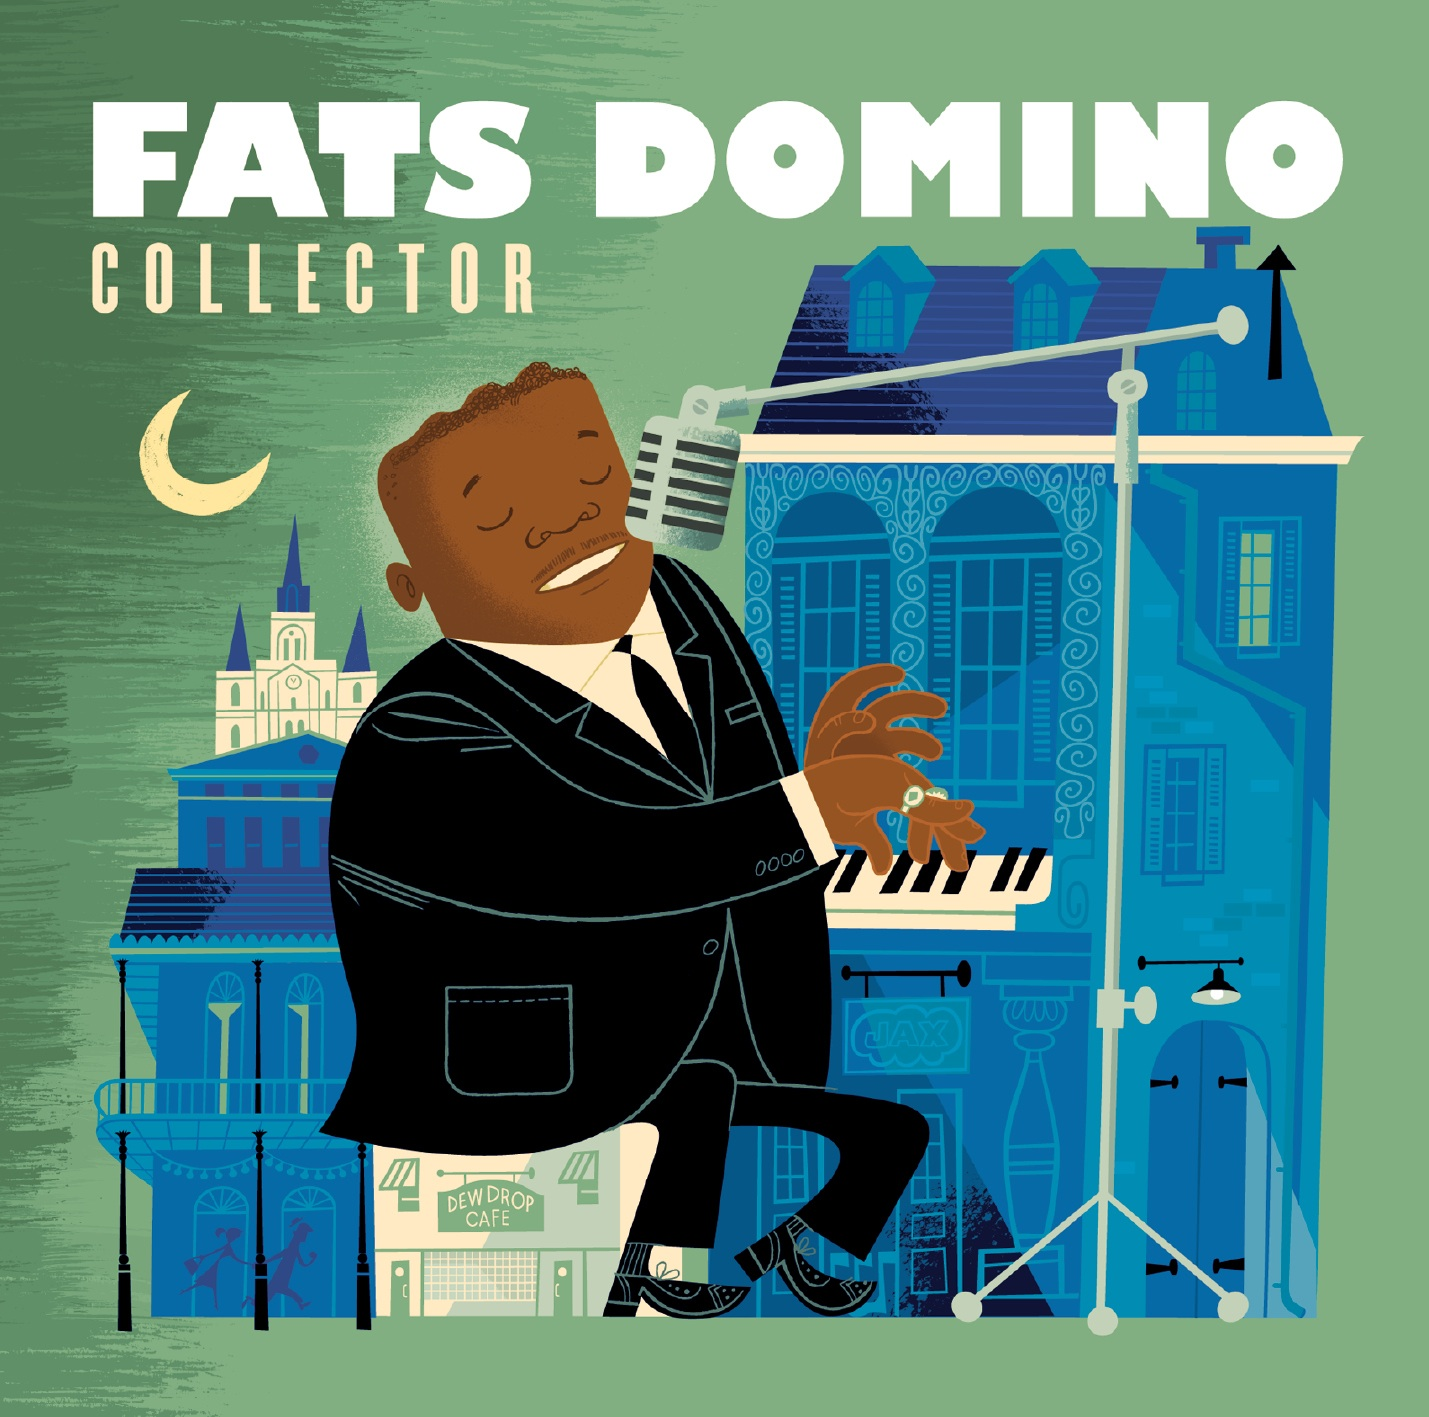 Fats Domino Collector